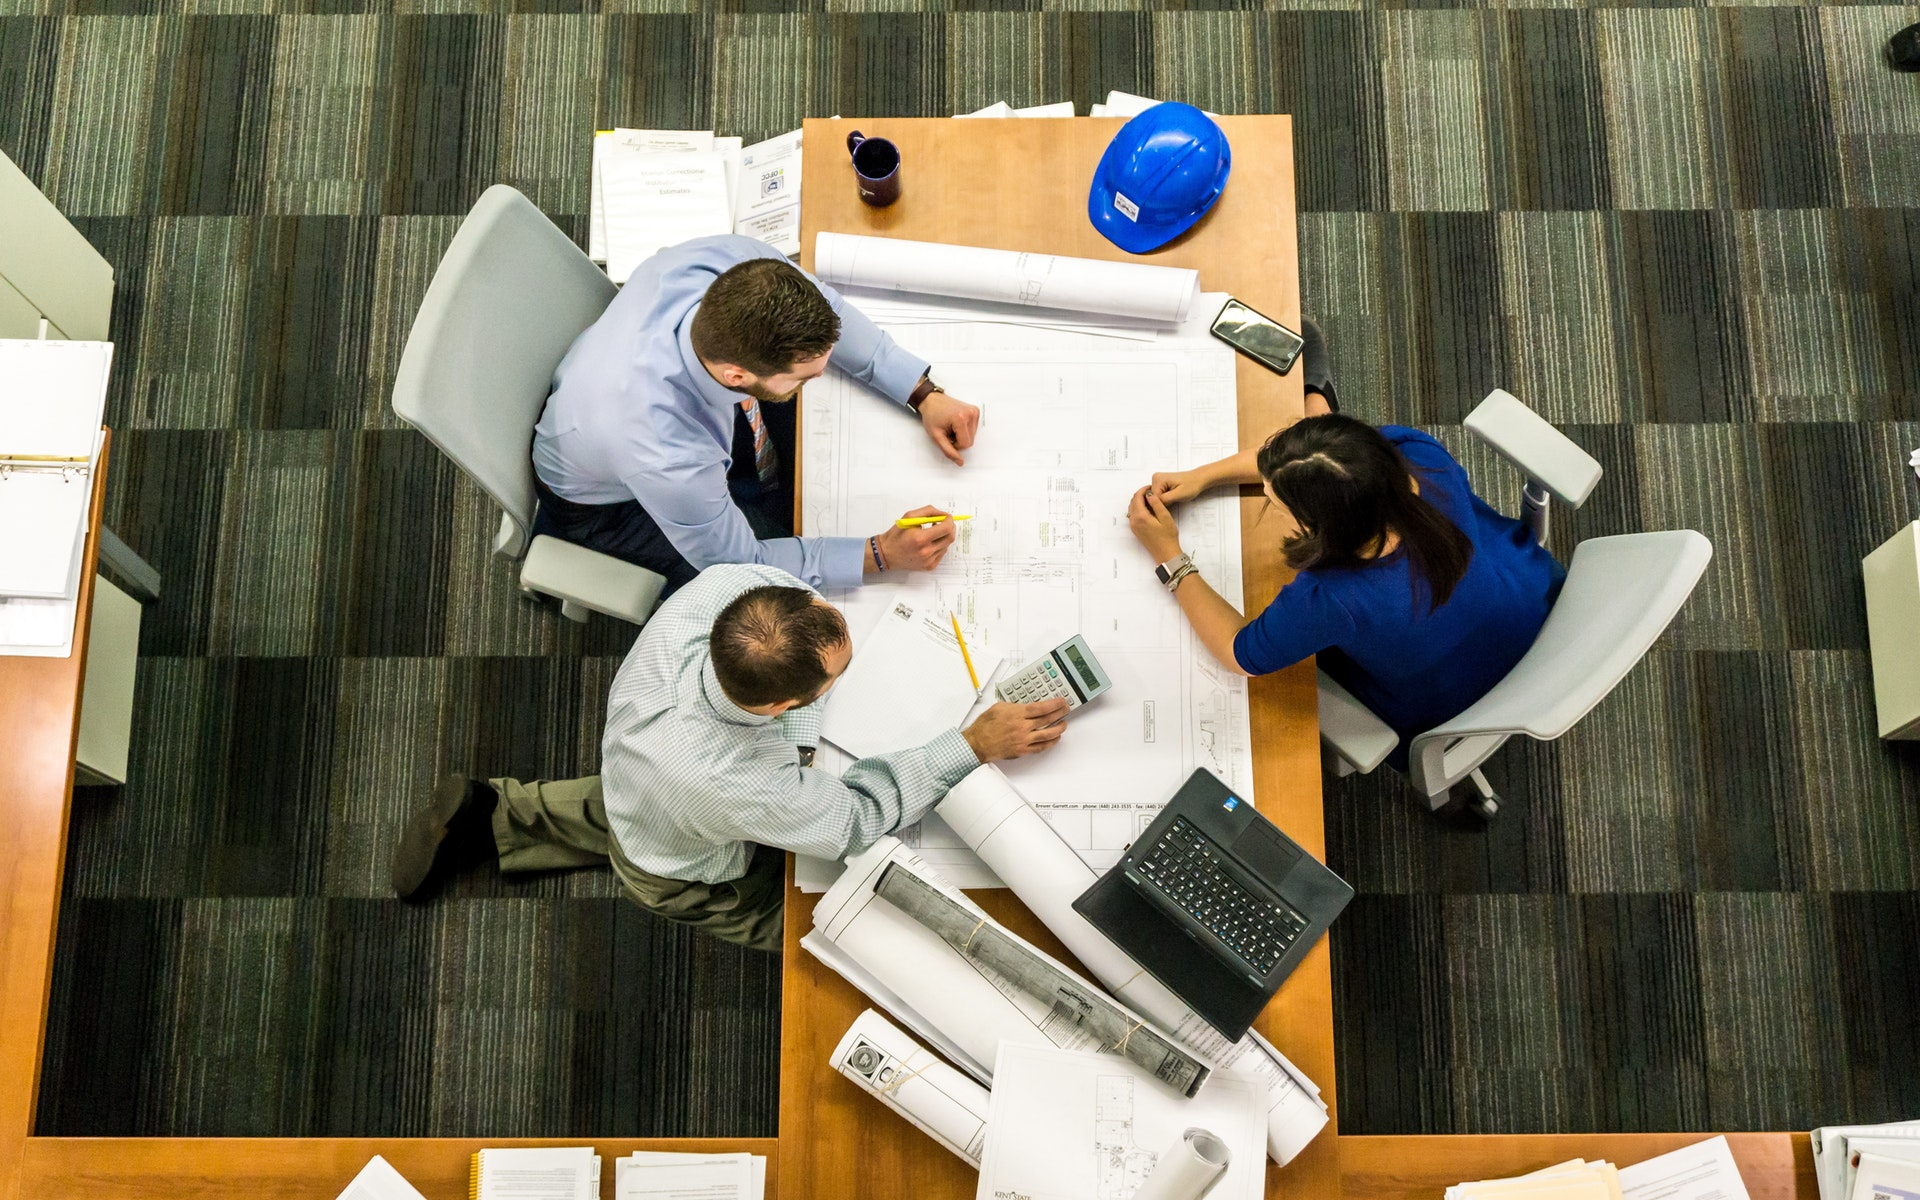 Workers huddle around table with plan sketch.